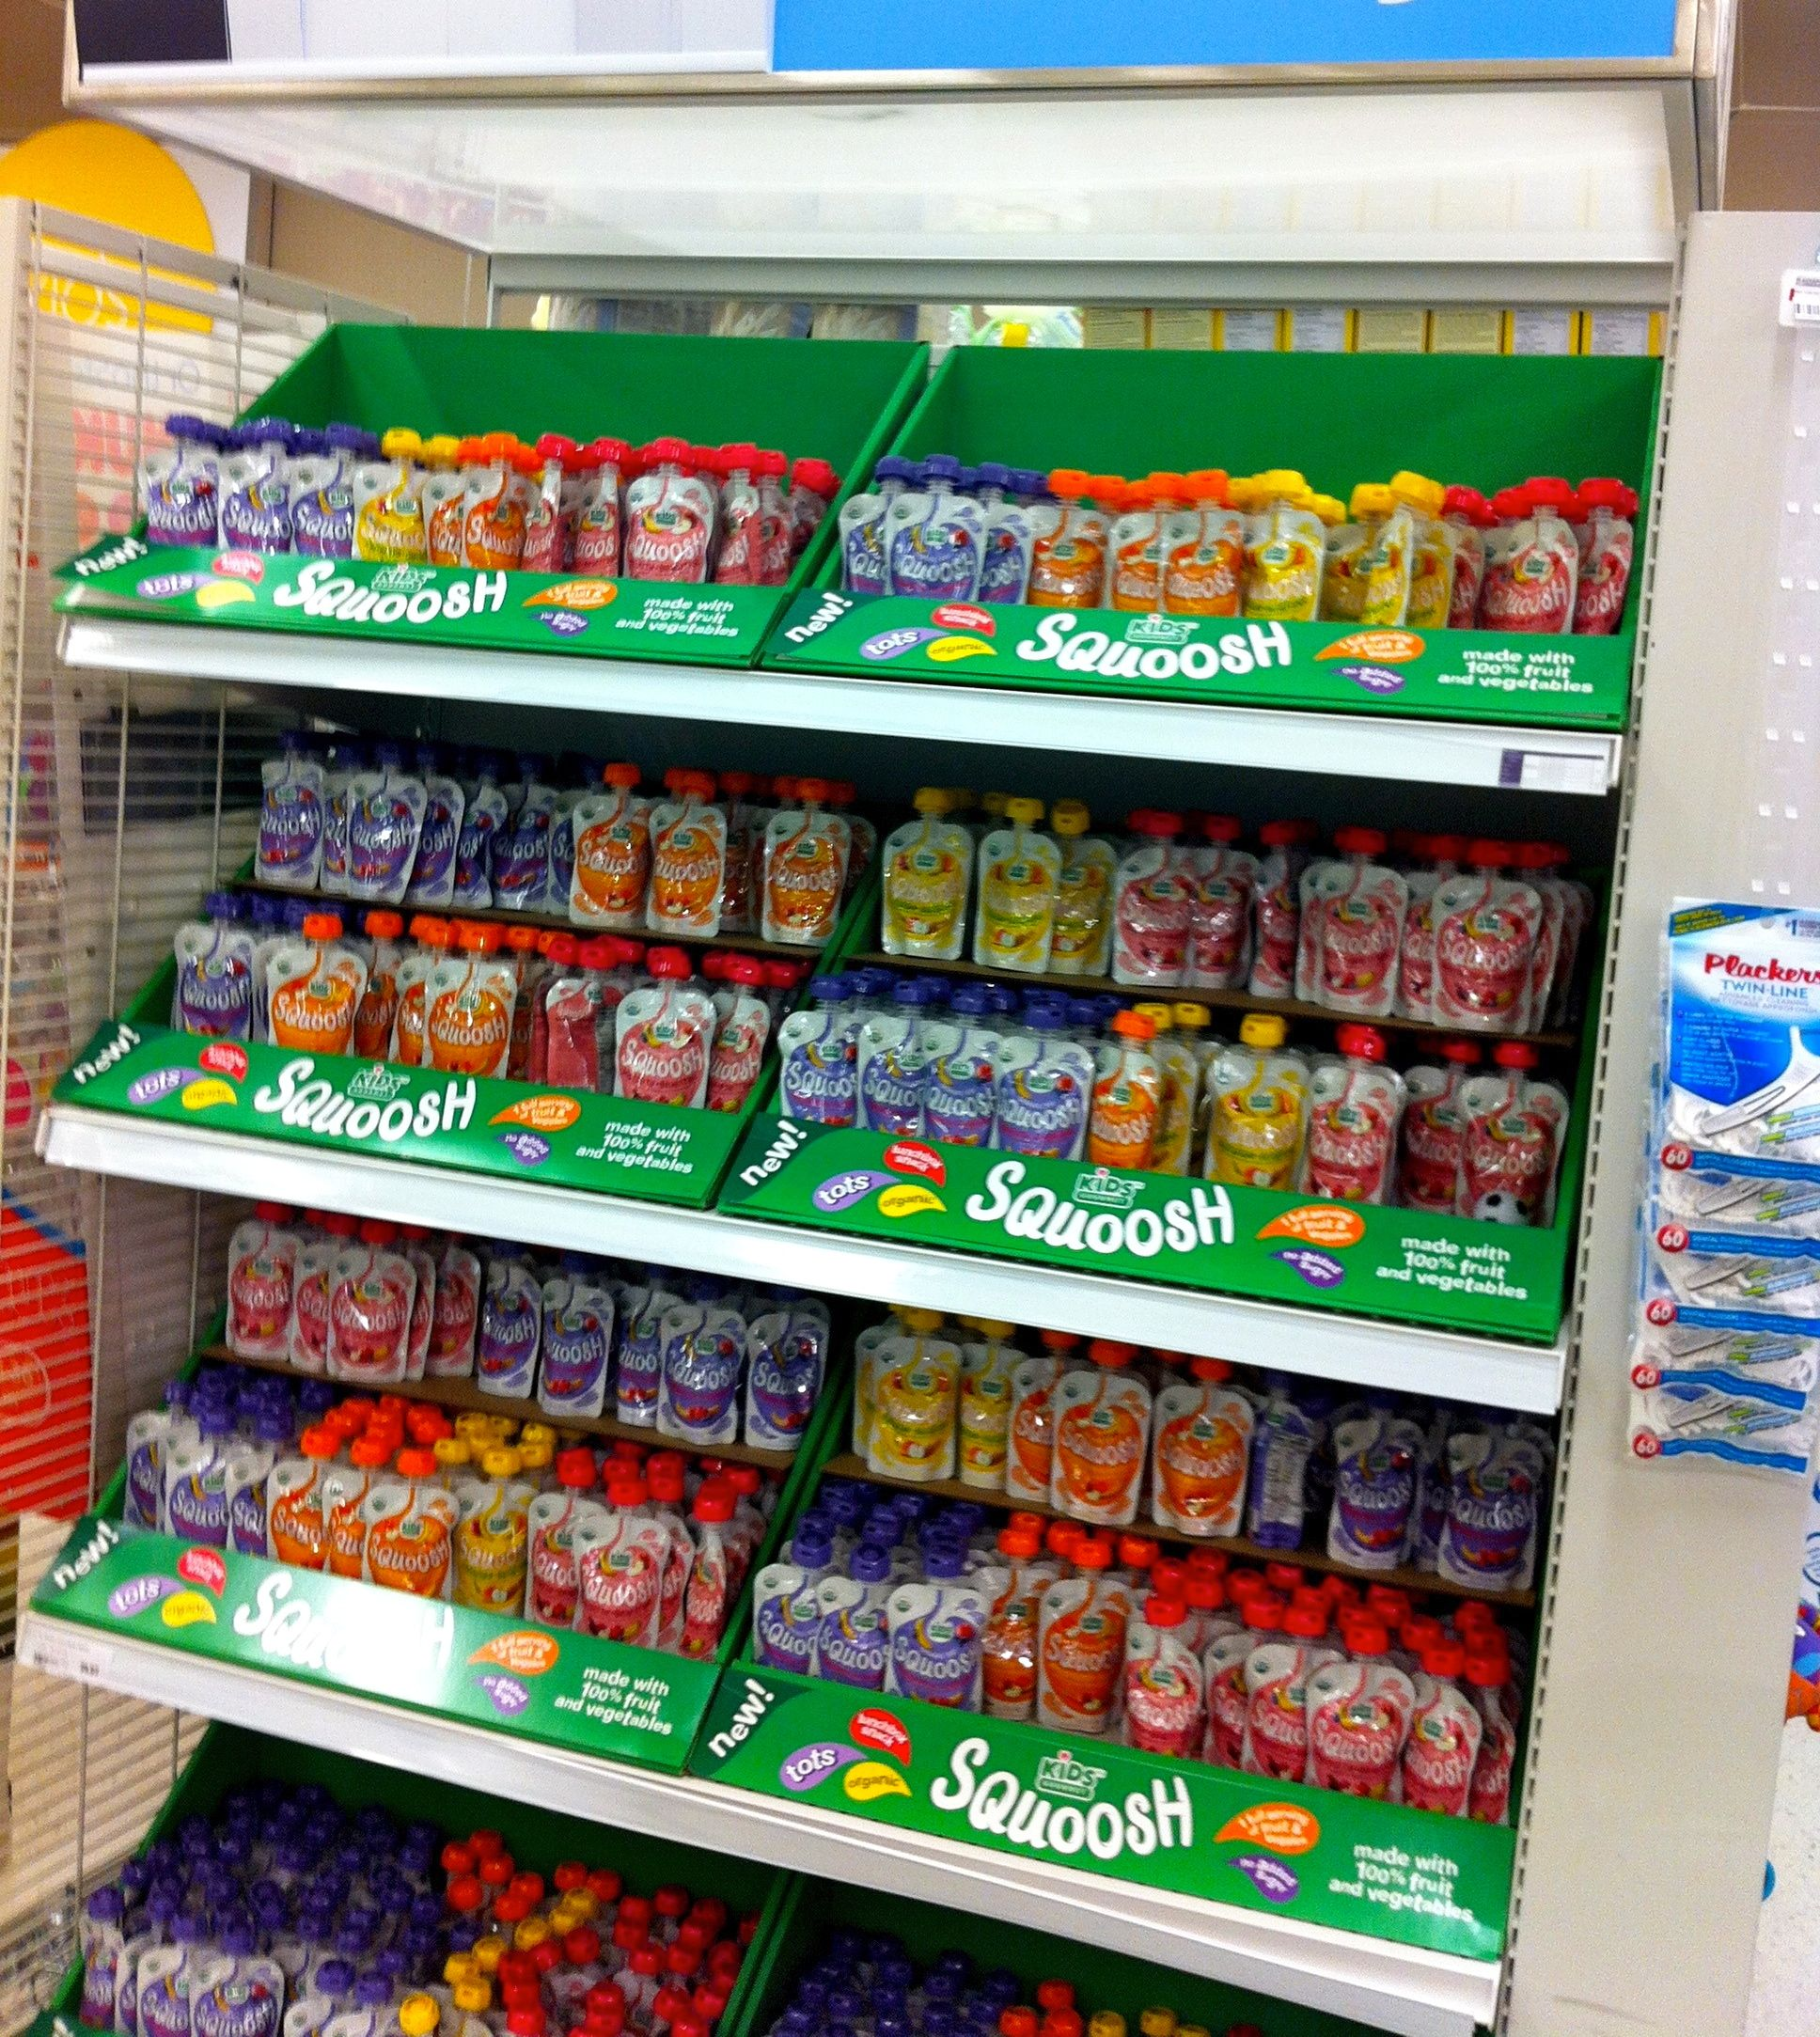 SPOTTED: Squoosh is now available in singles in Superstores across Canada!